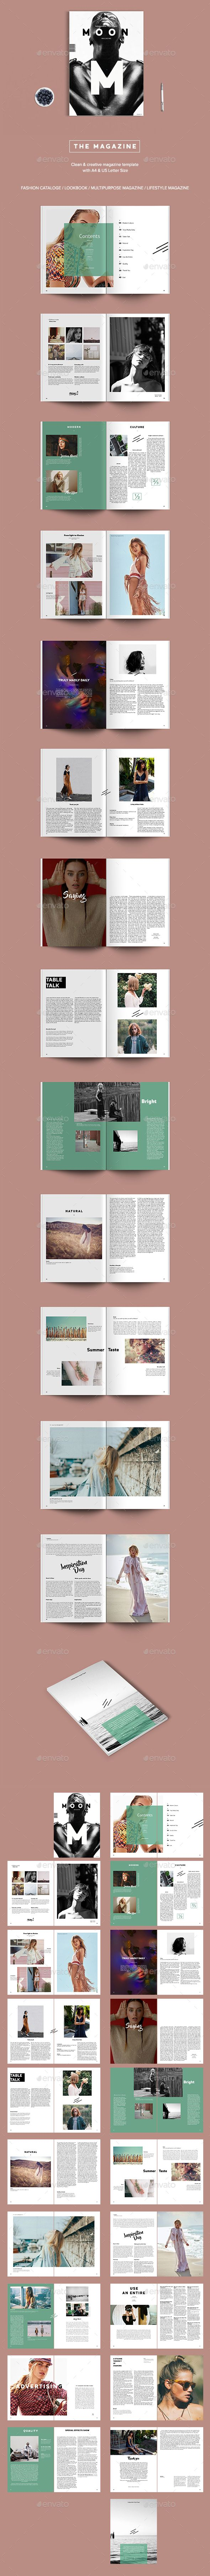 The Magazine  - Magazines Print Templates Download here : https://graphicriver.net/item/the-magazine-/17520219?s_rank=131&ref=Al-fatih